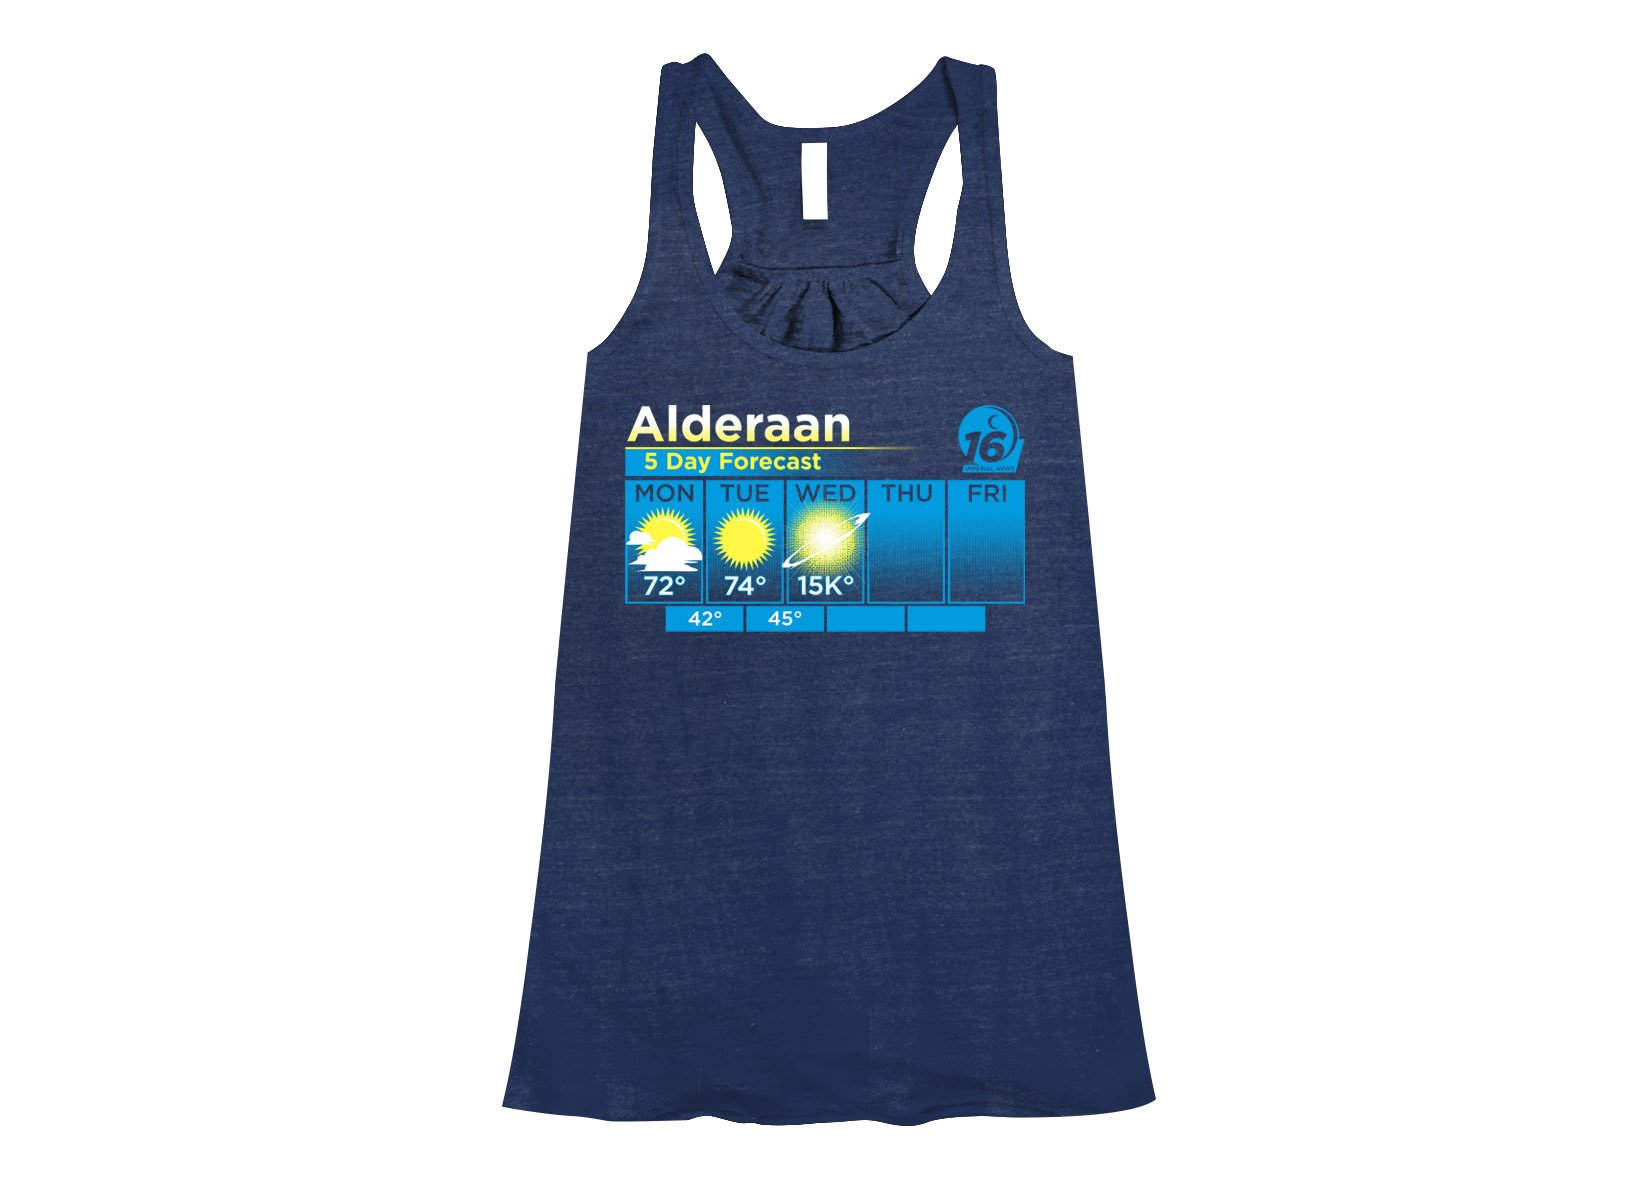 Alderaan 5 Day Forecast on Womens Tanks T-Shirt